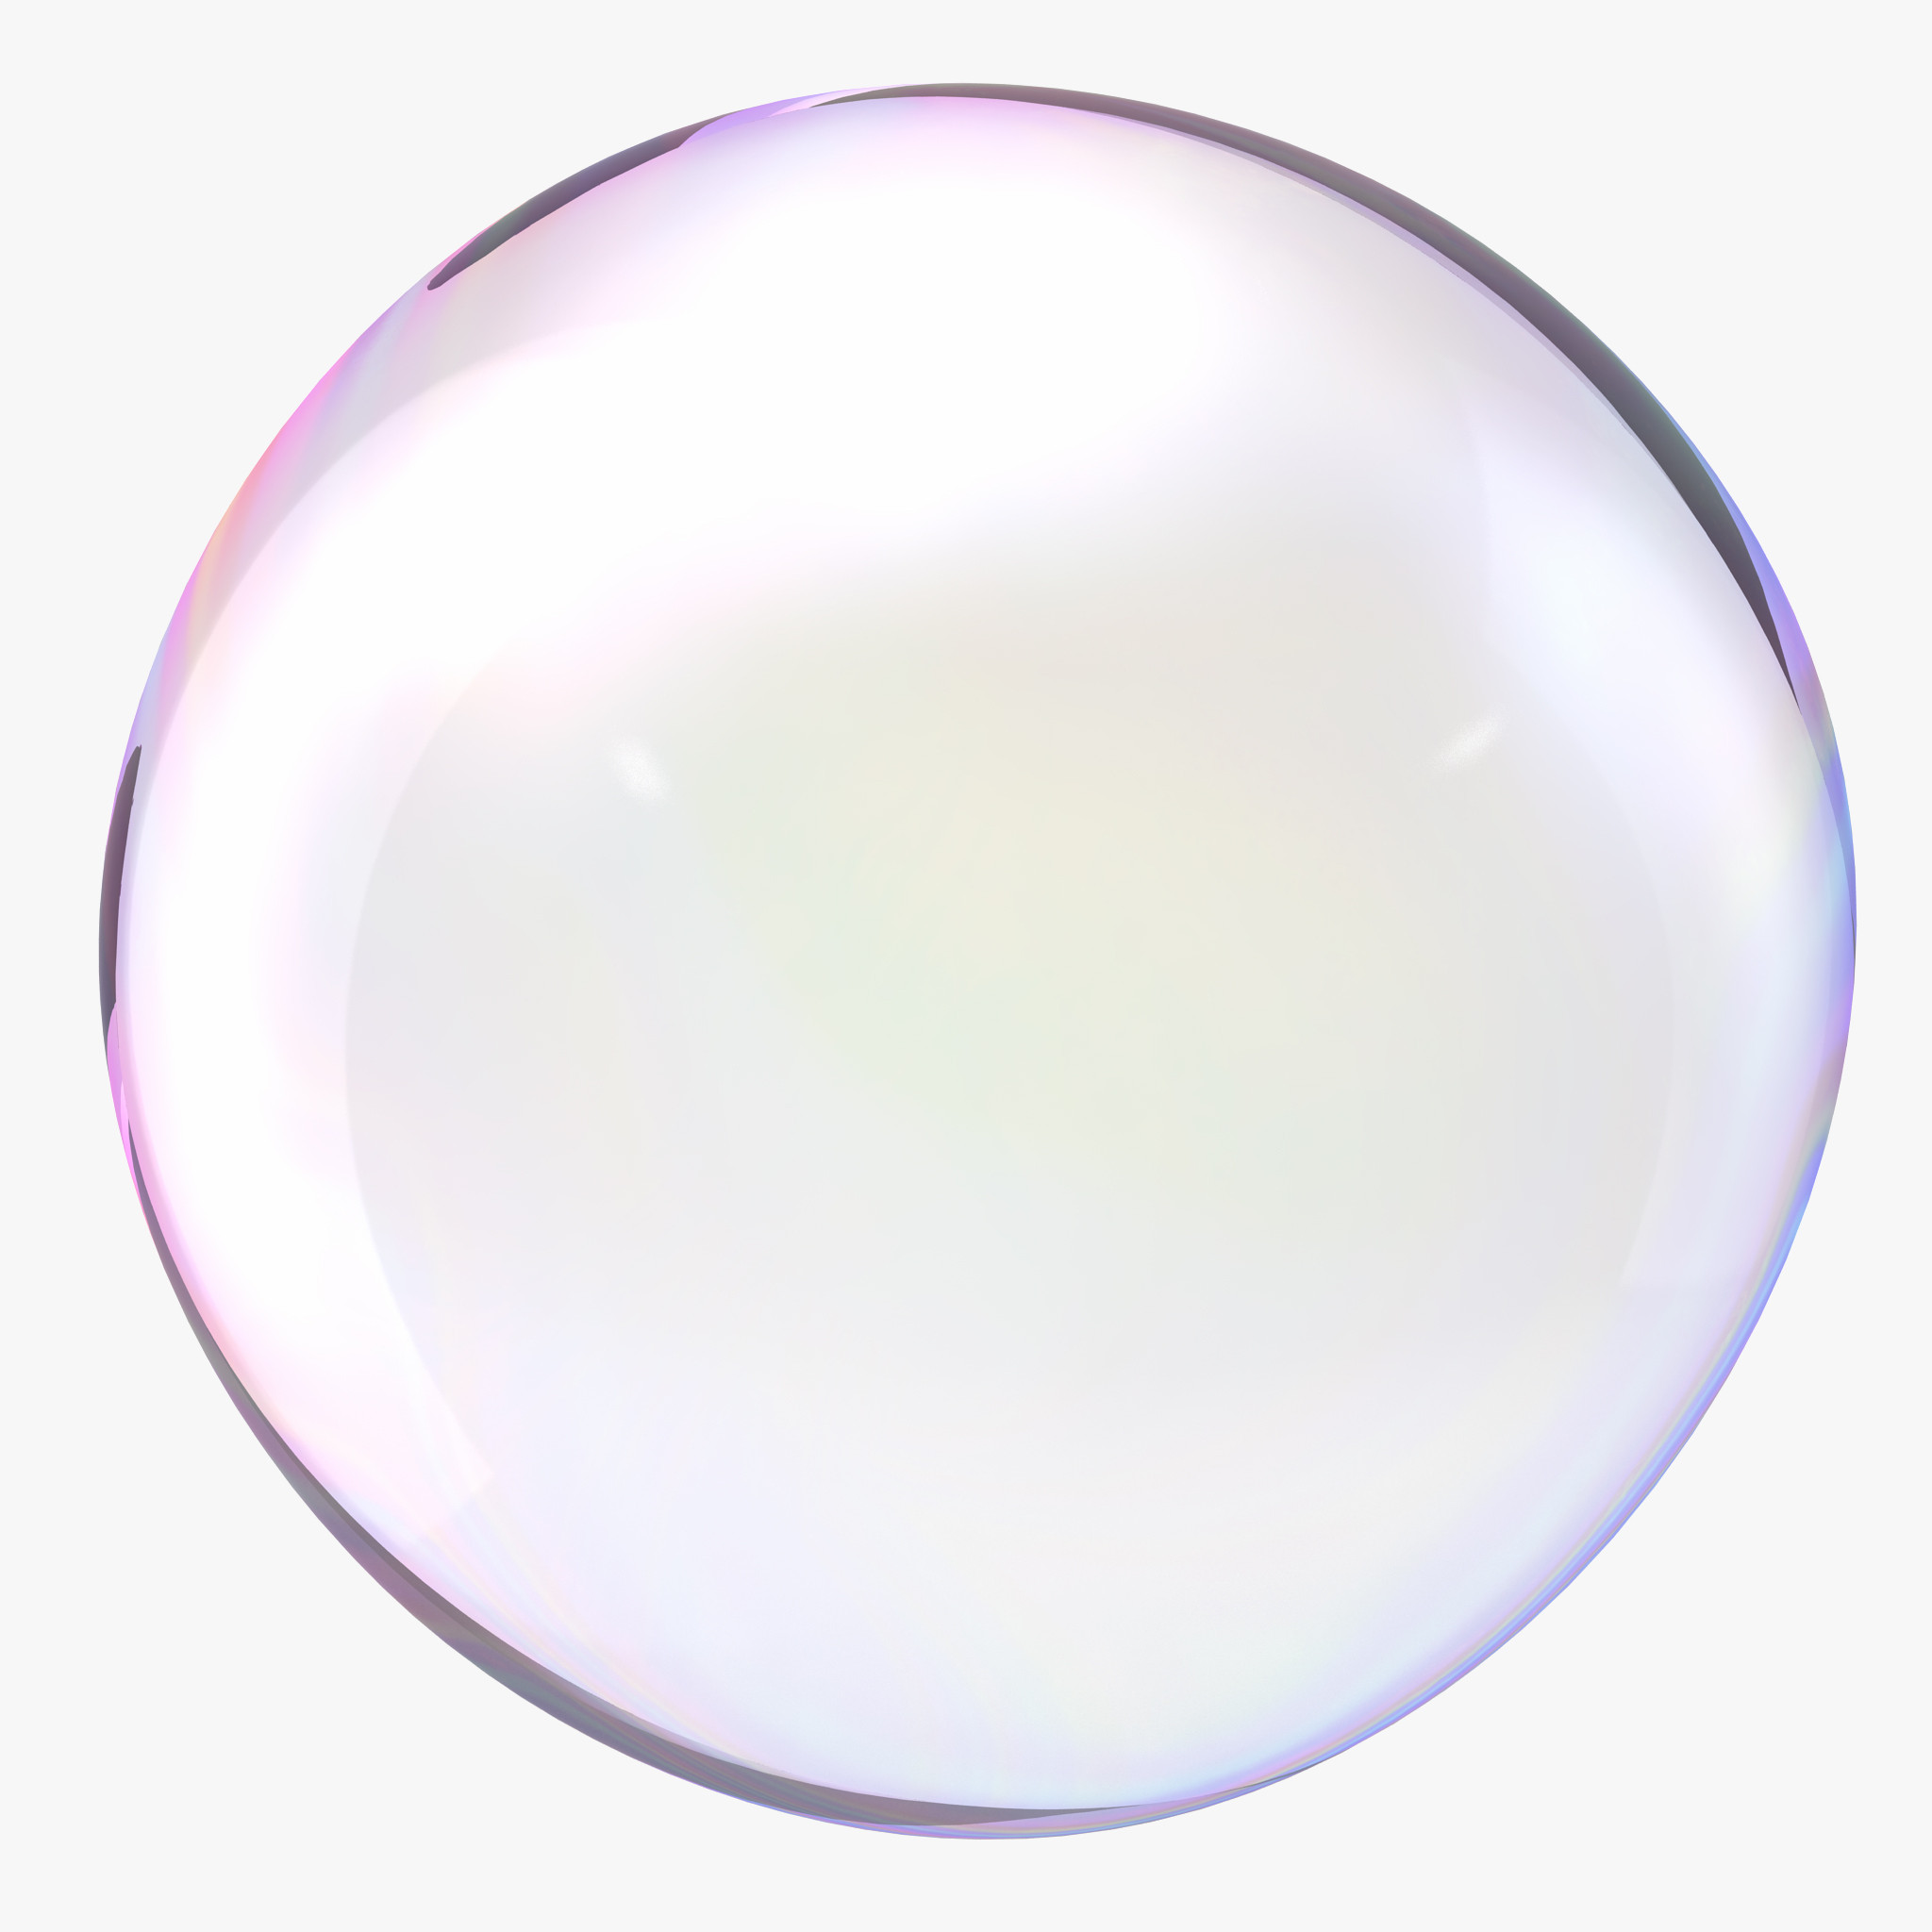 Purple Plain Bubble 476.56 Kb